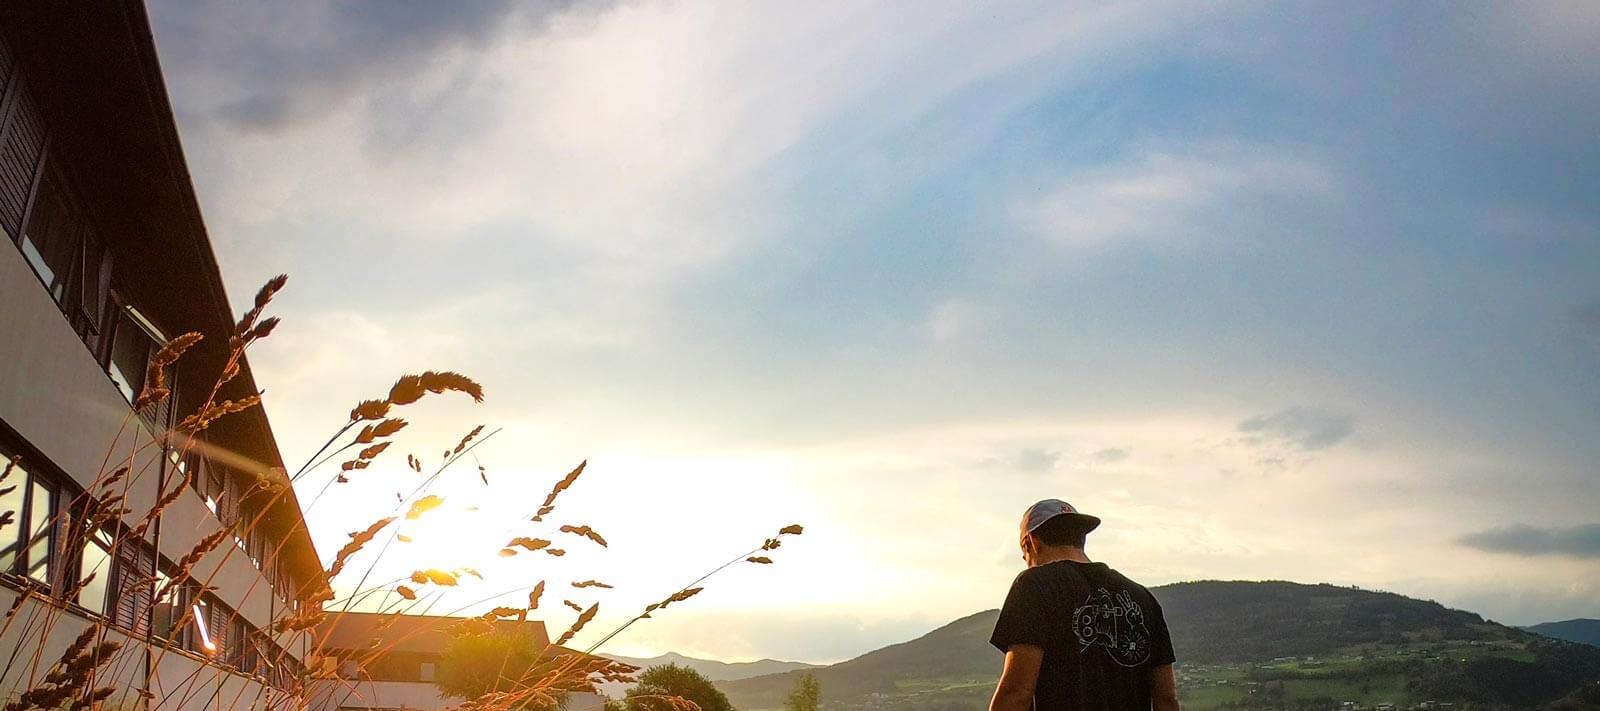 contiki-cares-climate-action-plan-sunset-fields-wondering